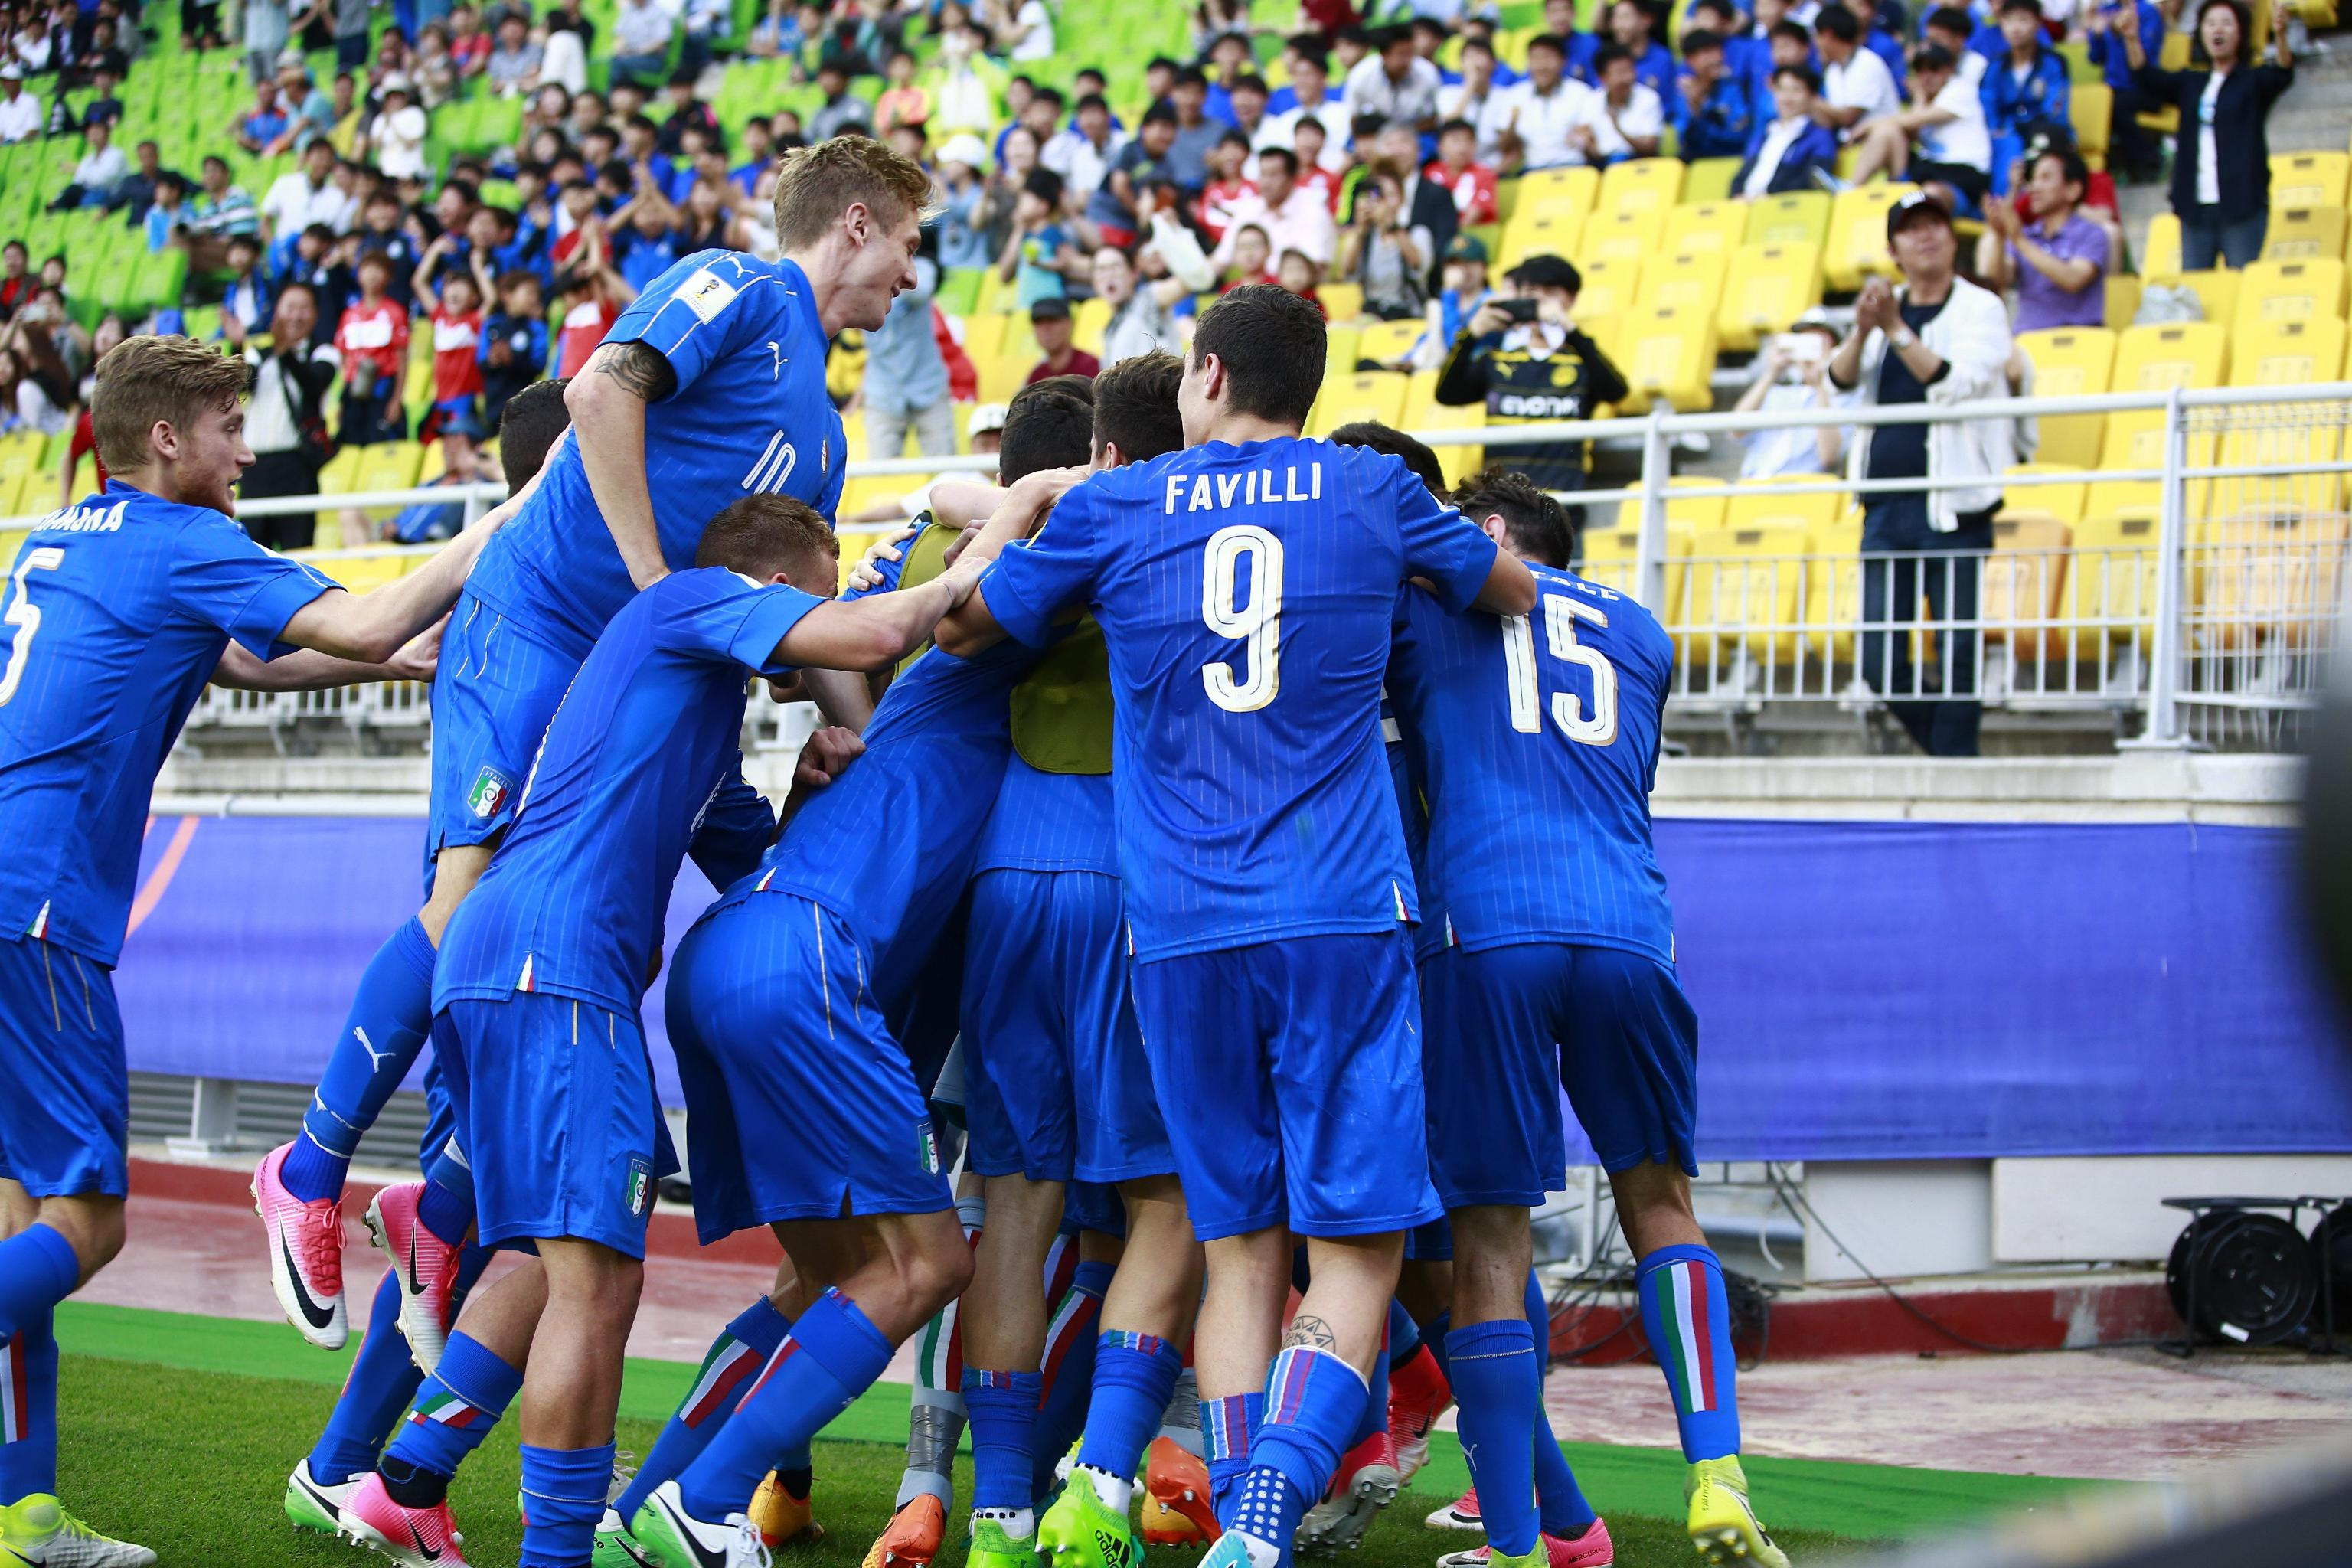 epa06011474 Federico Dimarco of Italy celebrates after scoring during the quarter final match of the FIFA U-20 World Cup 2017 between the Italy and Zambia in Suwon World Cup Stadium, South Korea, 05 June 2017. EPA/JEON HEON-KYUN